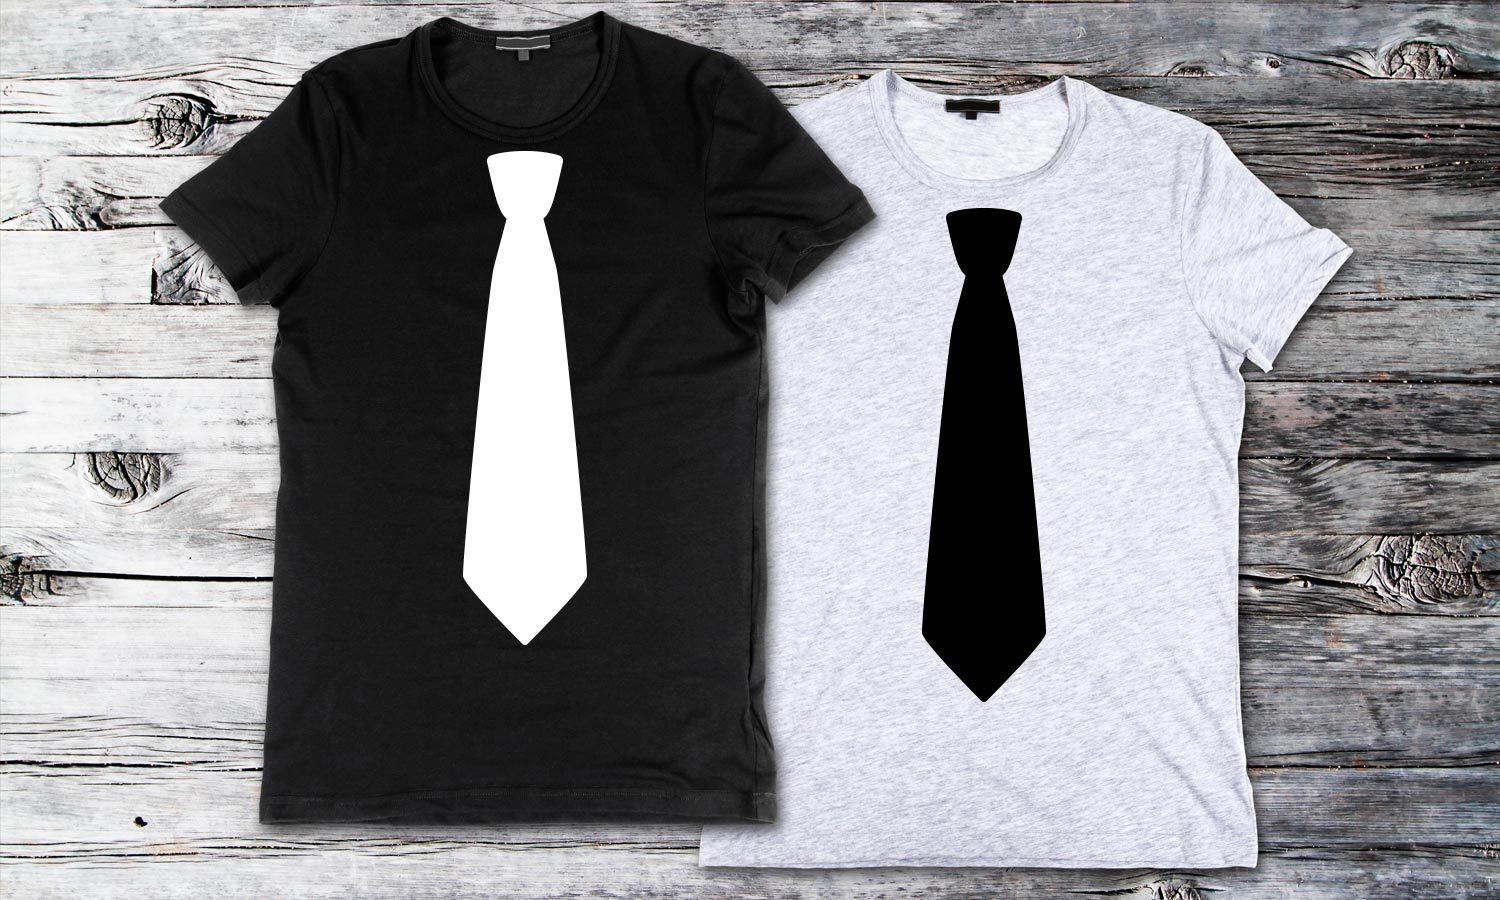 HR Tie - Printed T-Shirt for Men, Women and Kids - TS452